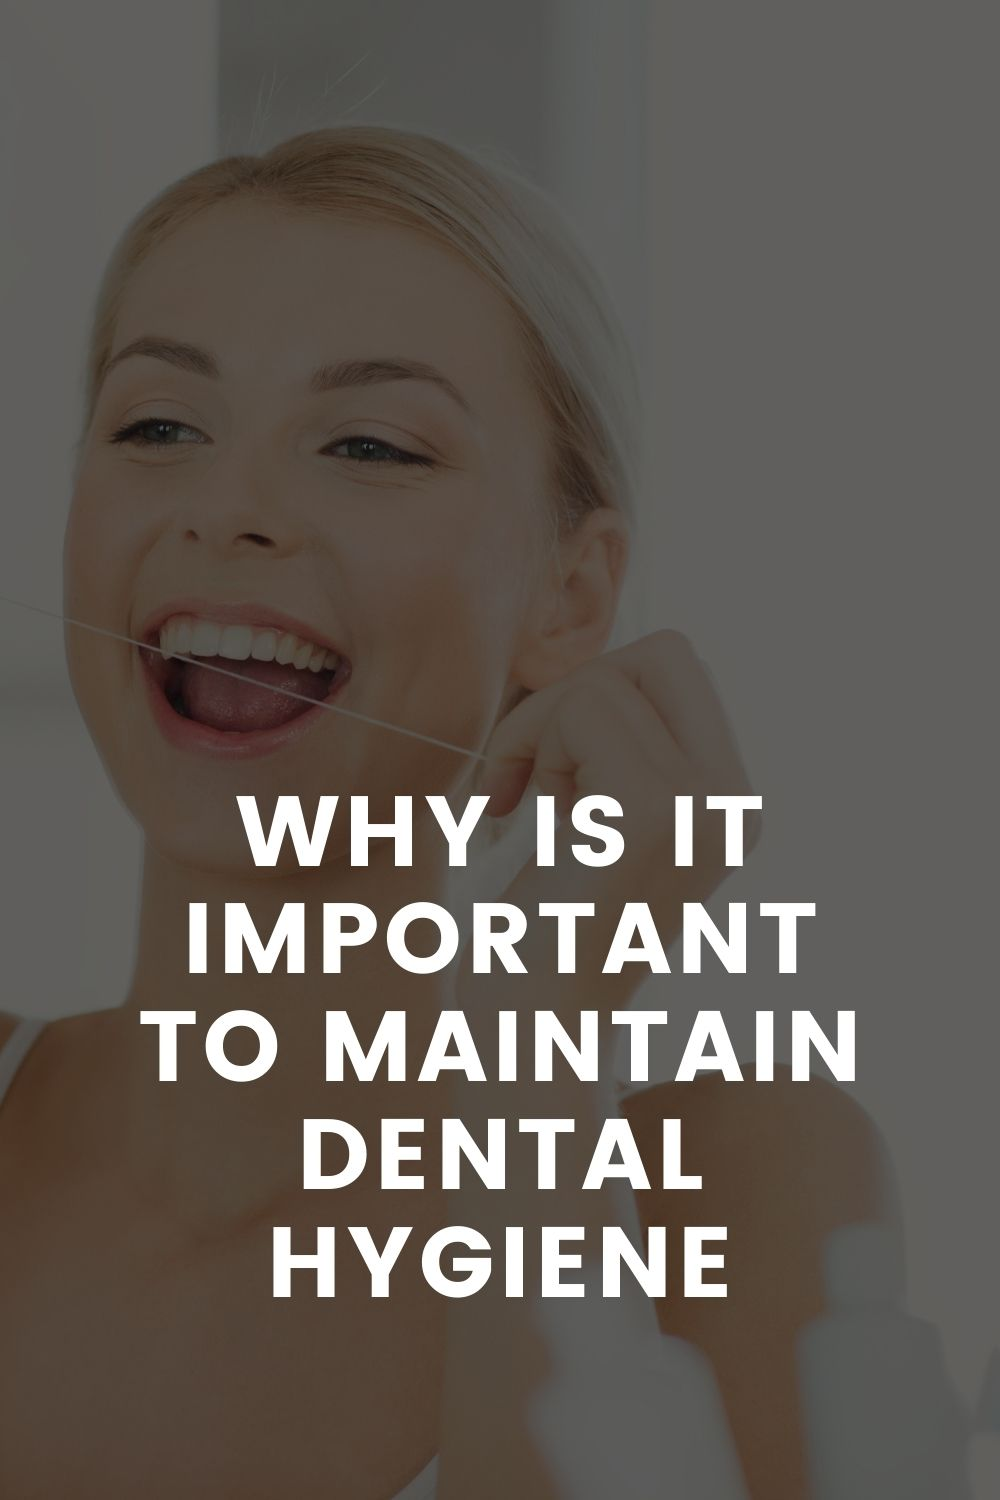 Why Is It Important To Maintain Dental Hygiene